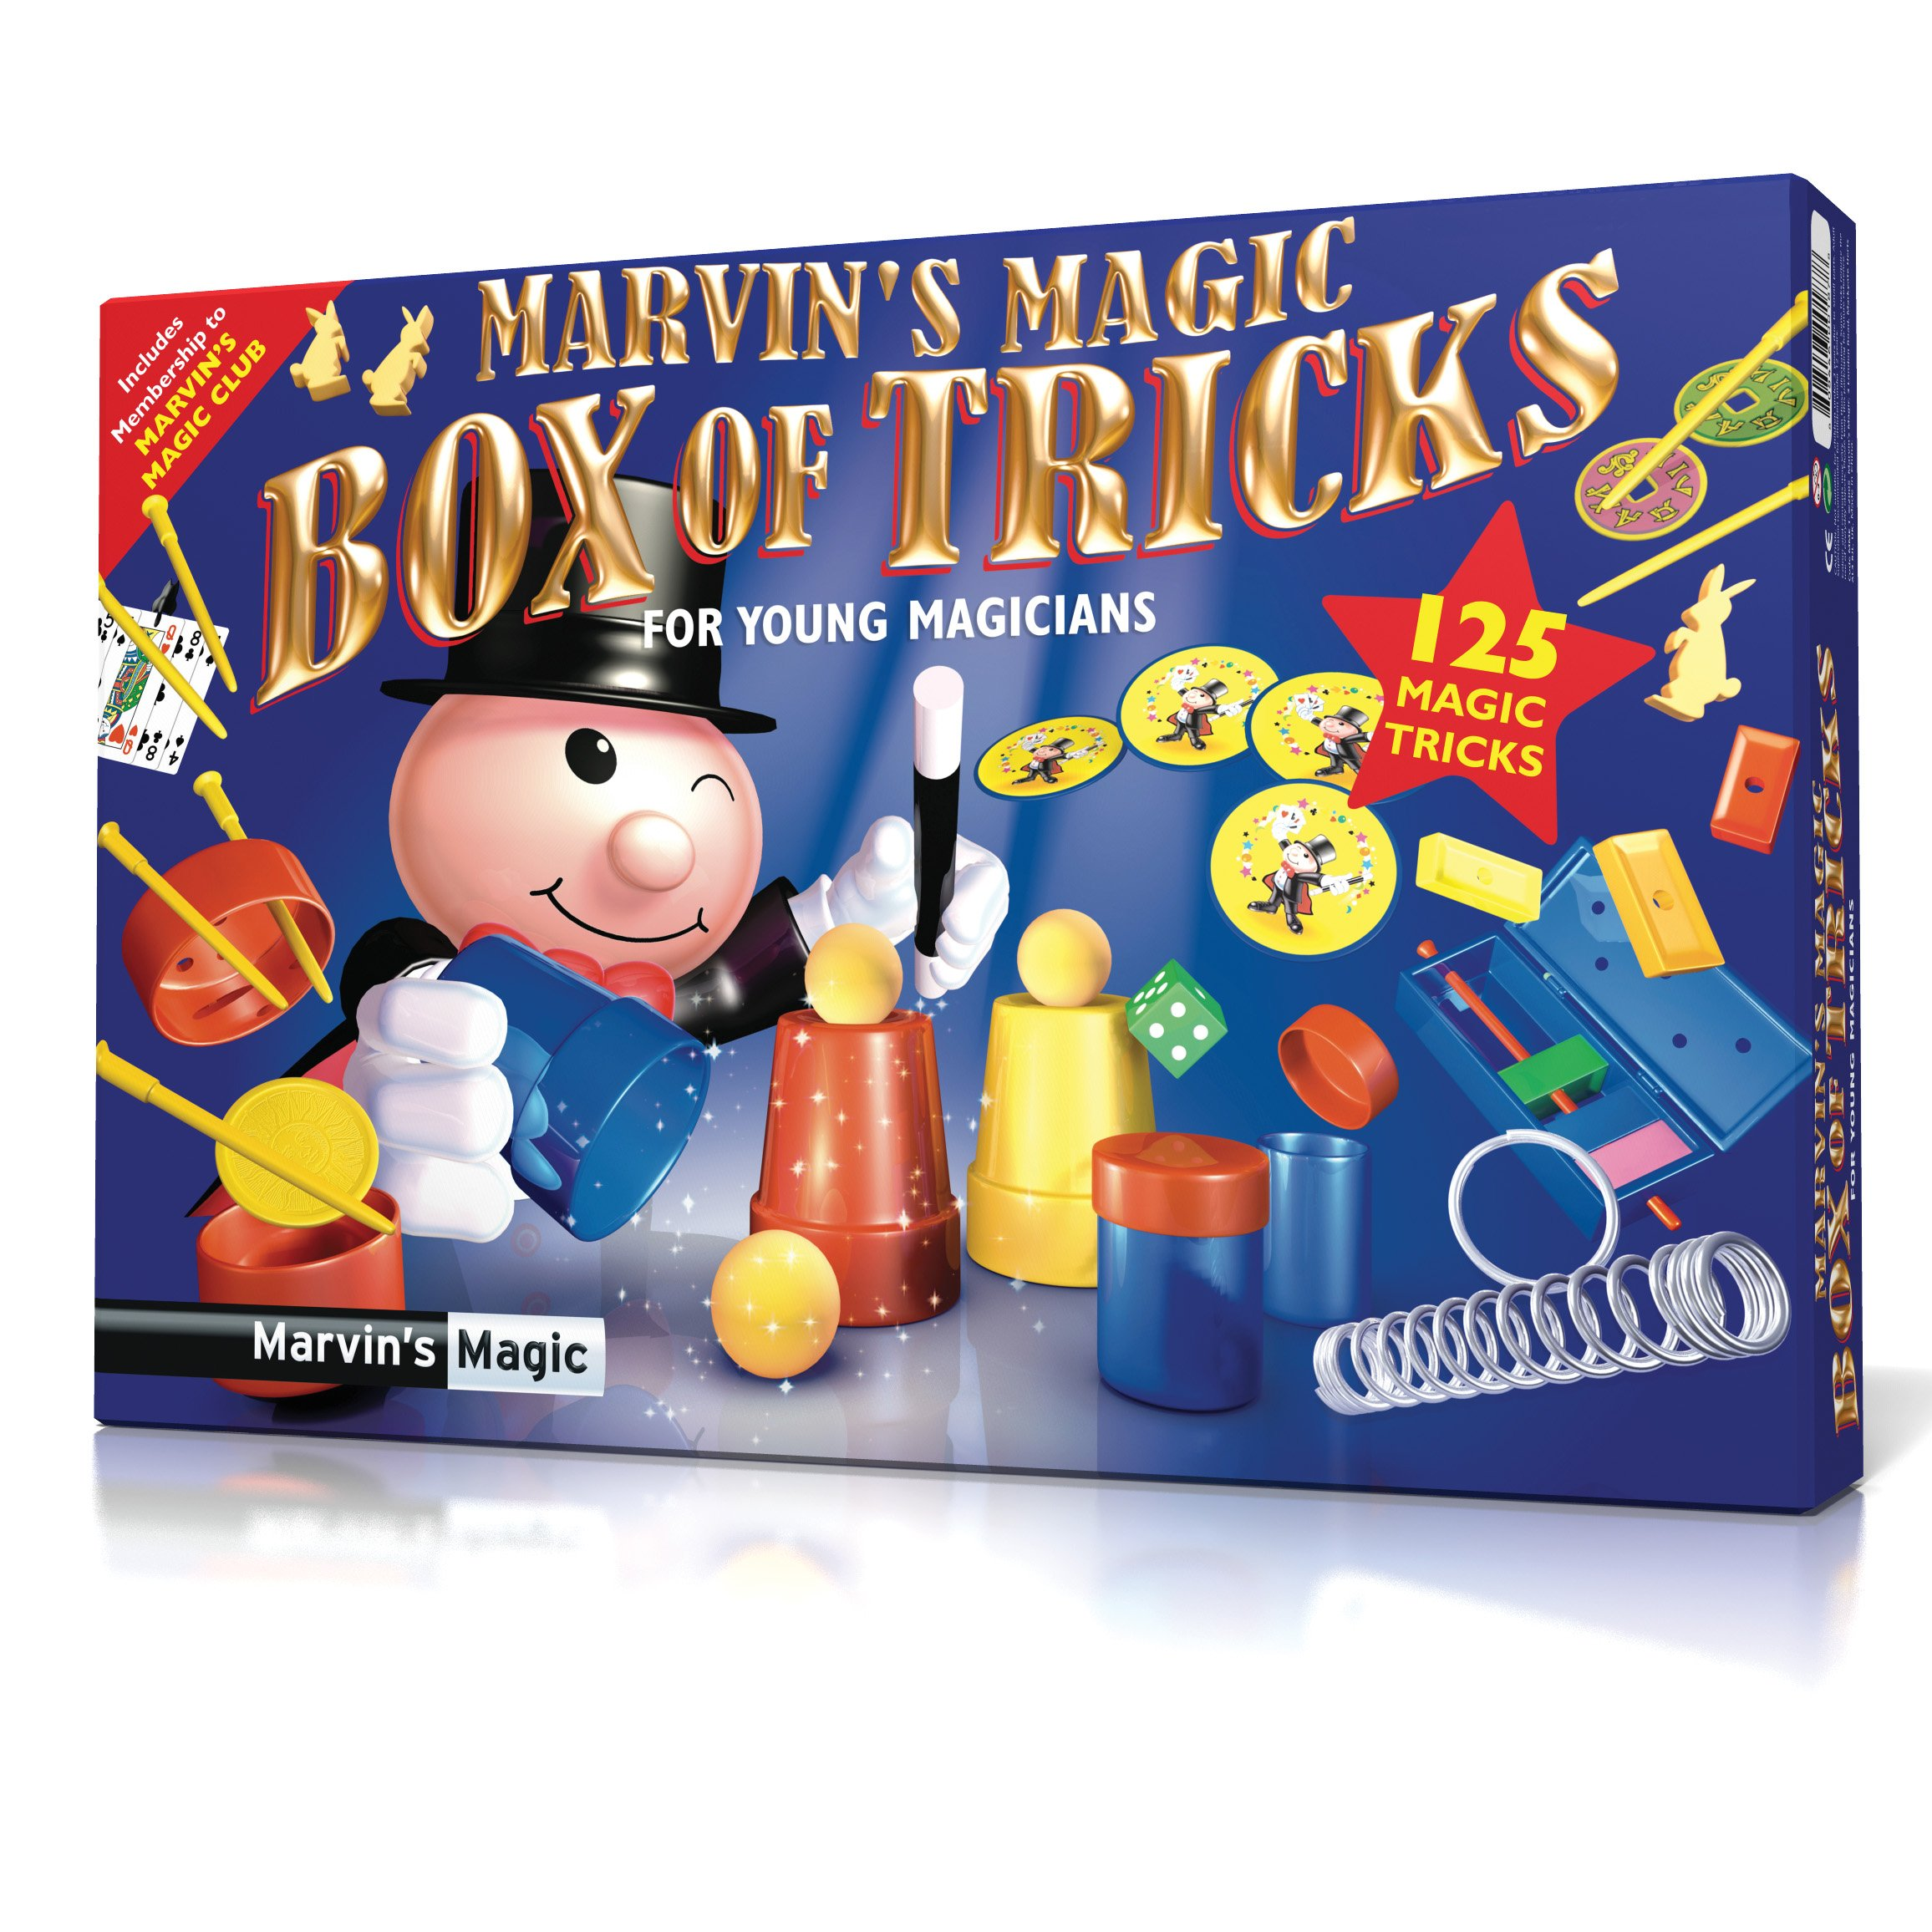 Marvin's Magic '125 Box of Tricks' for Kids, 125 Magic Tricks Set for Girls and Boys, Cups and Balls, Card Tricks, Sponge Magic Rabbits, Color block escape, Mind reading dice trick by Marvin's Magic